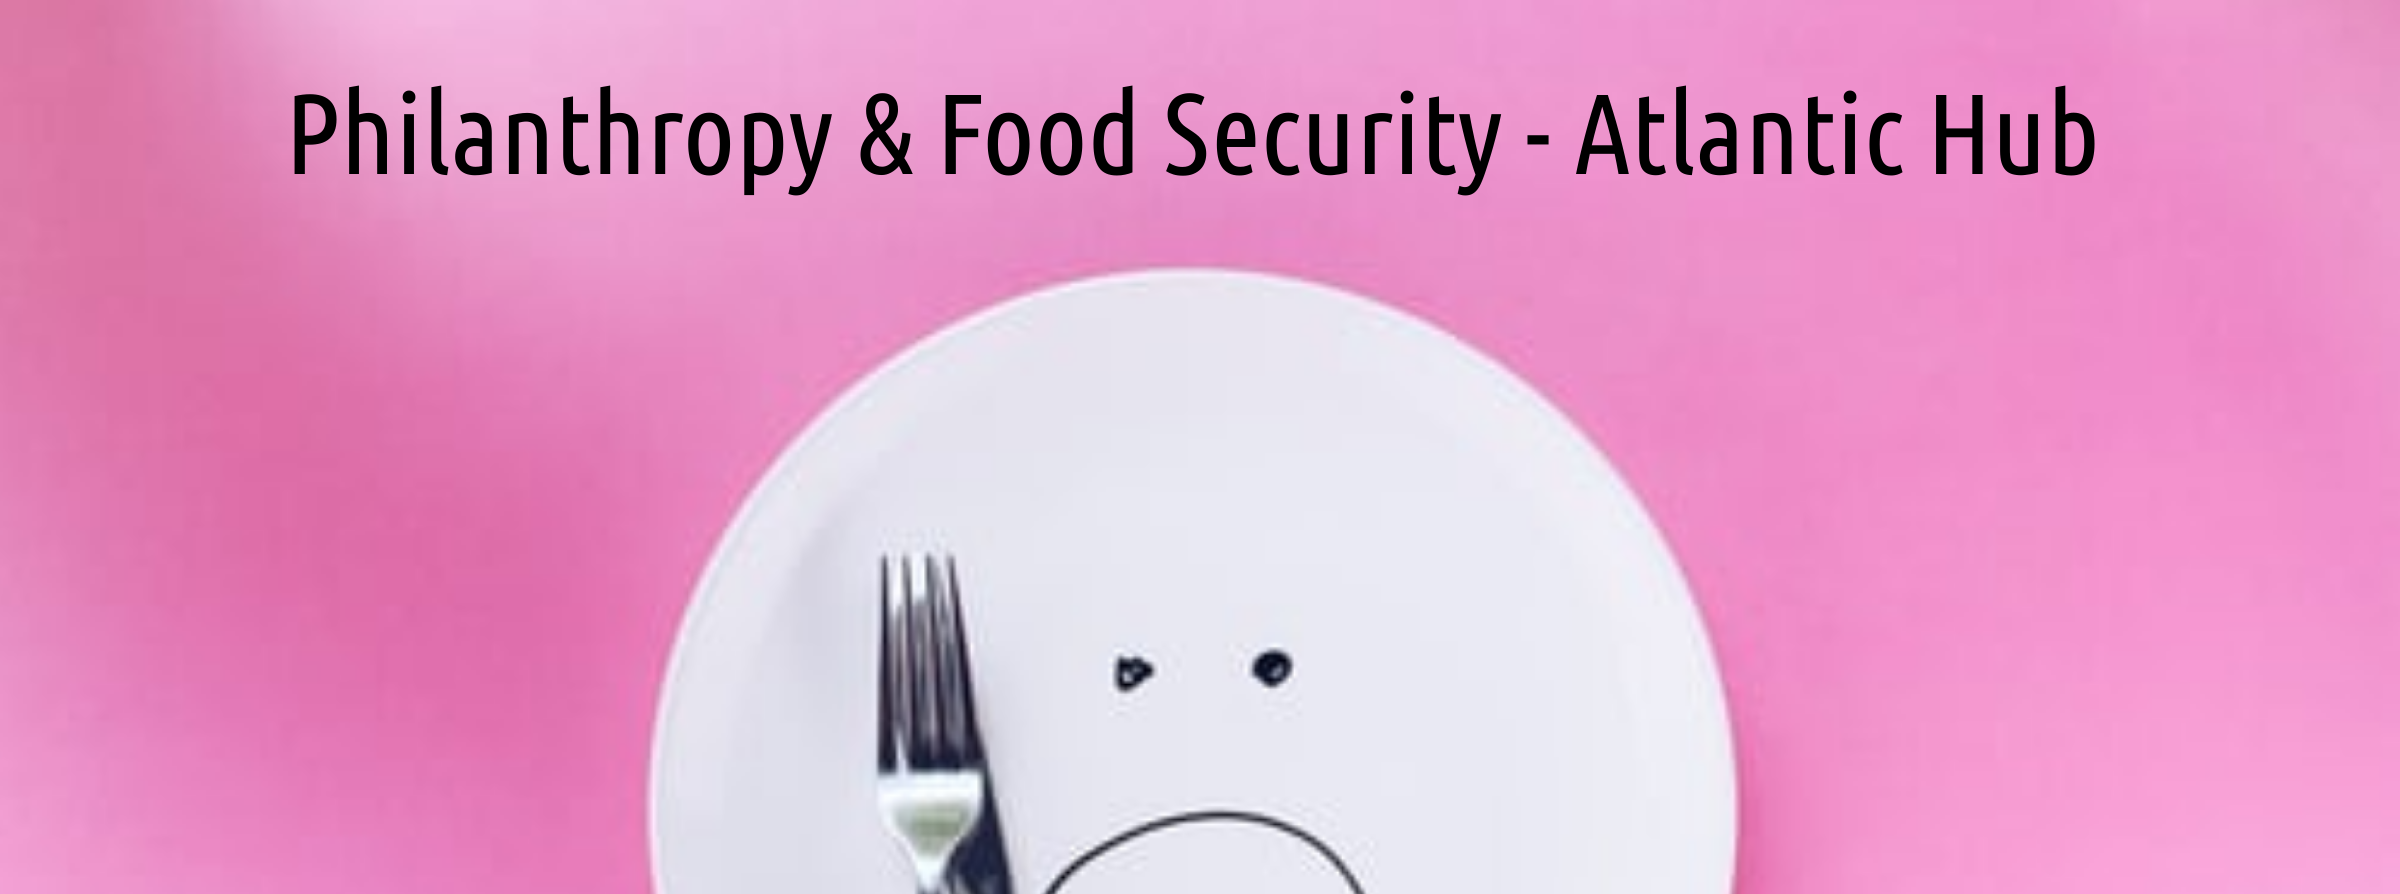 Philanthropy and Food Security